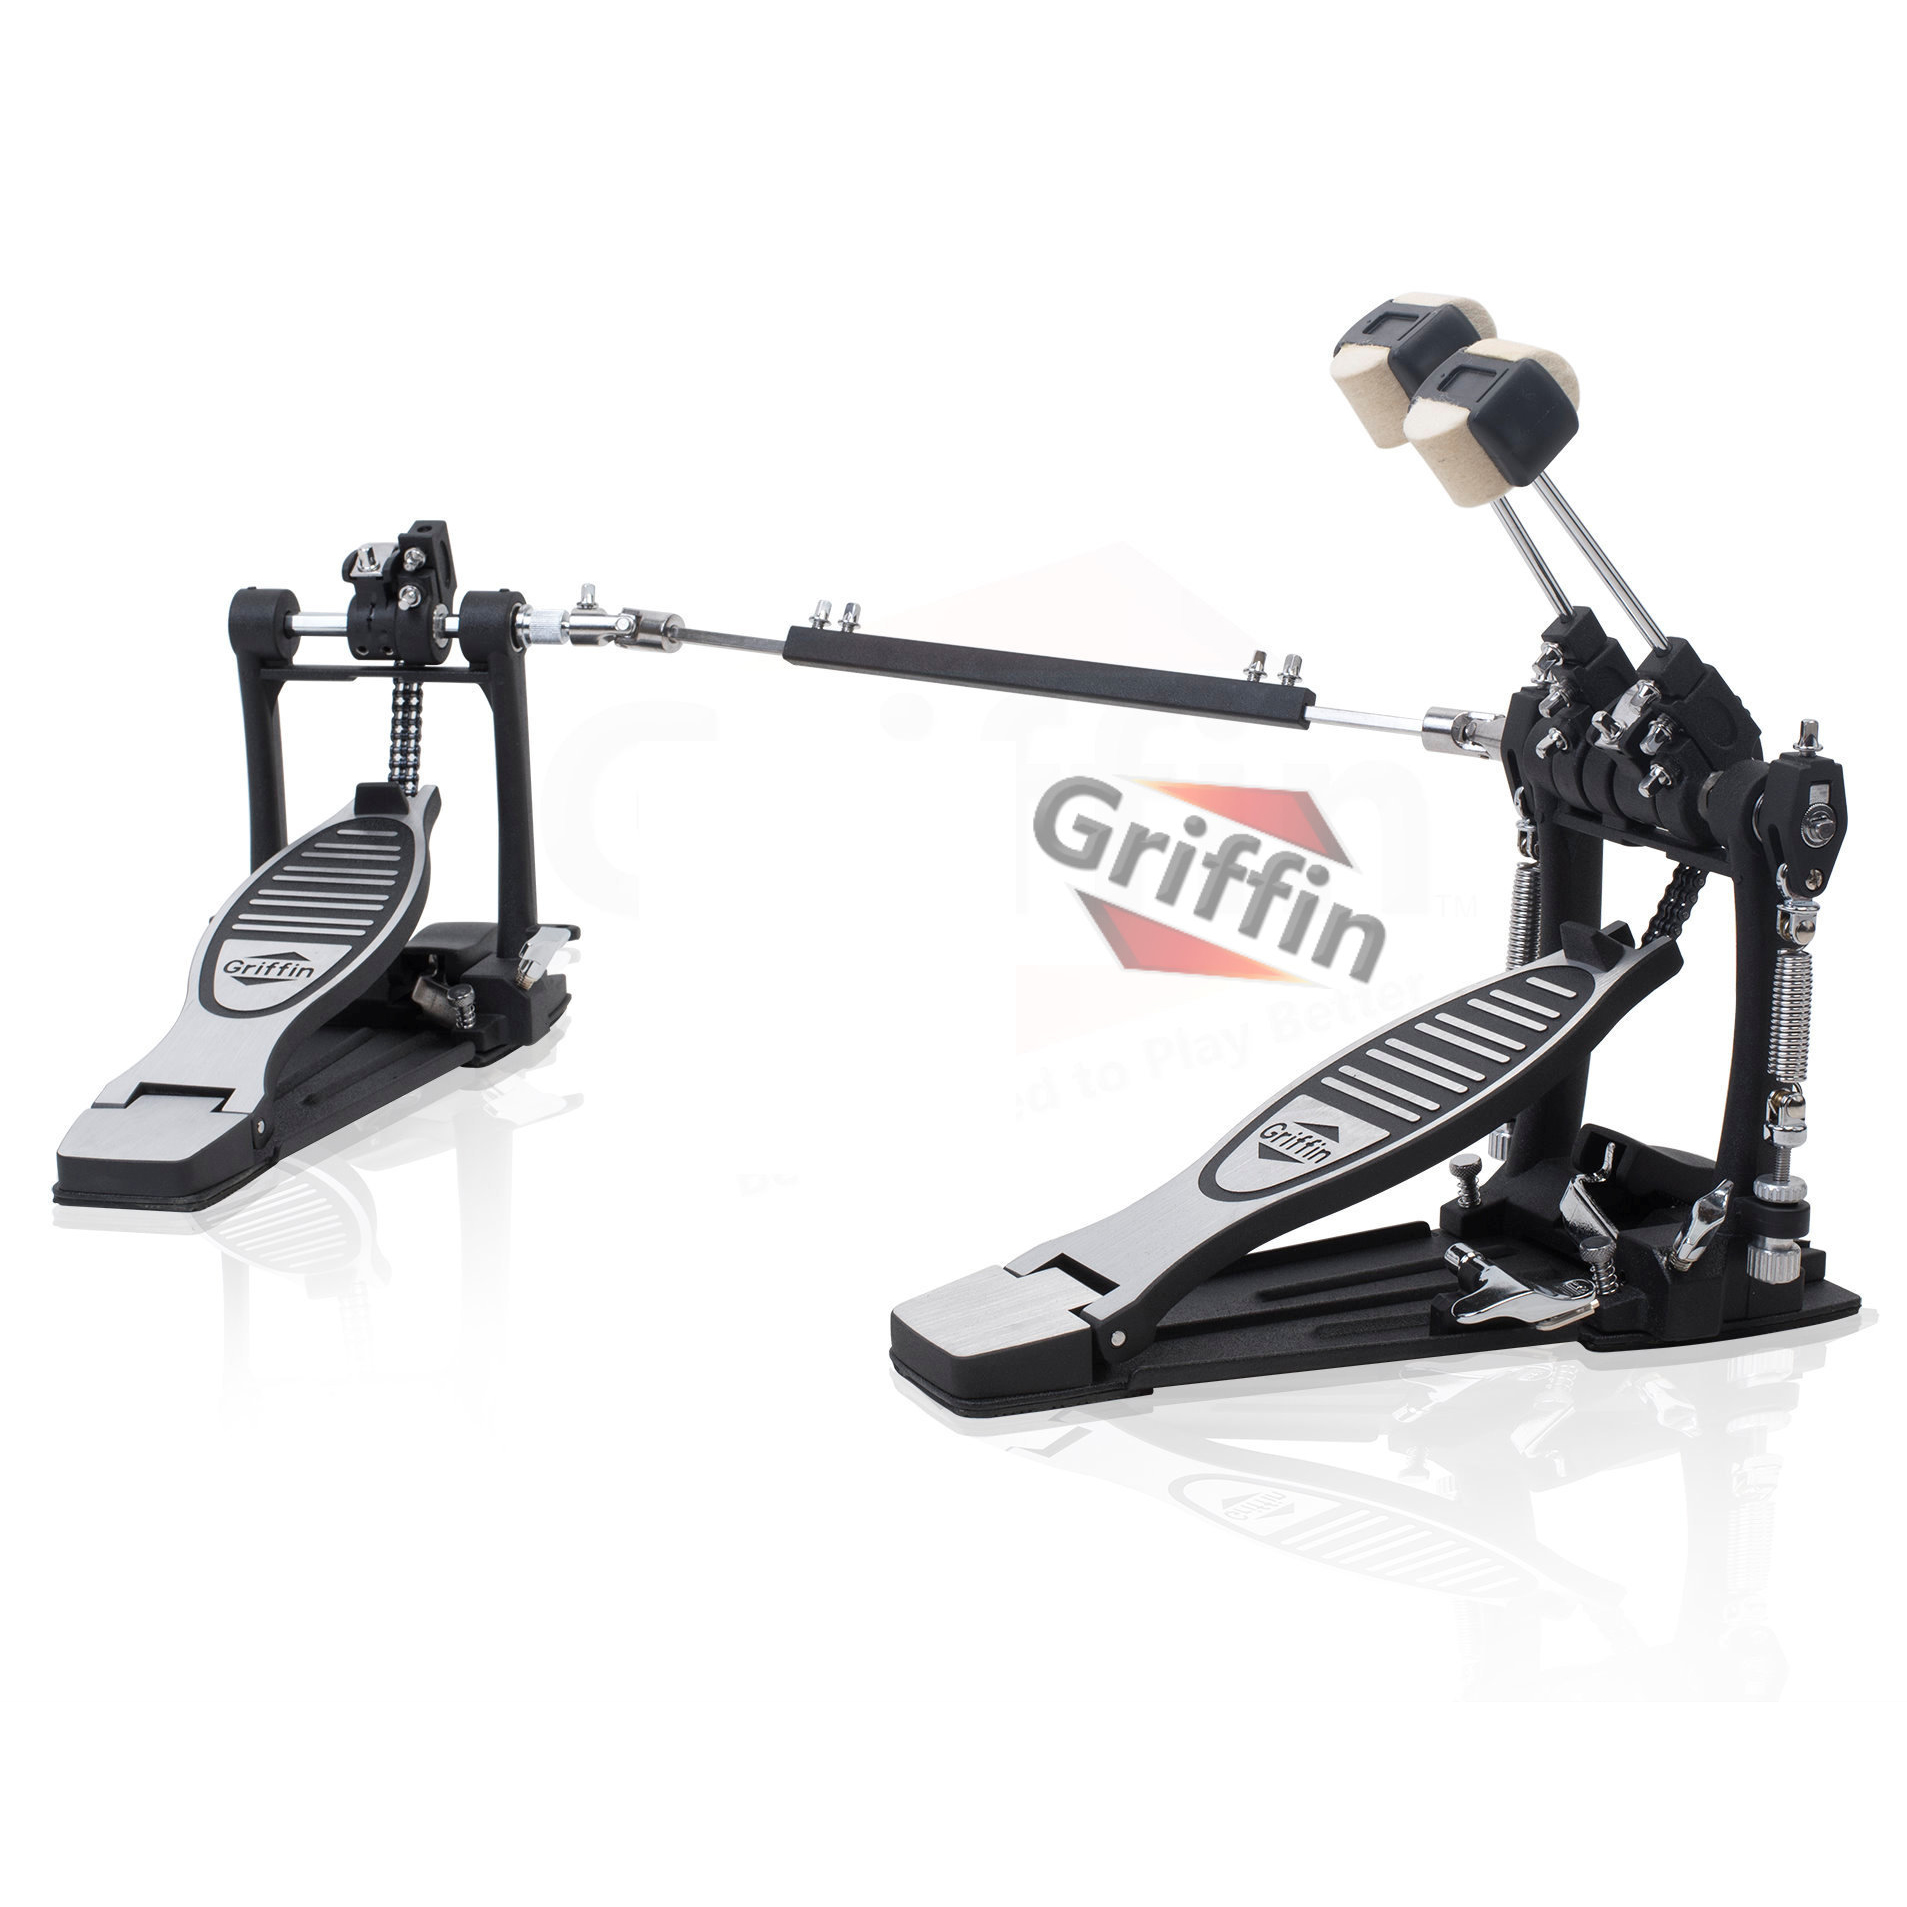 Double Kick Drum Pedal for Bass Drum by Griffin